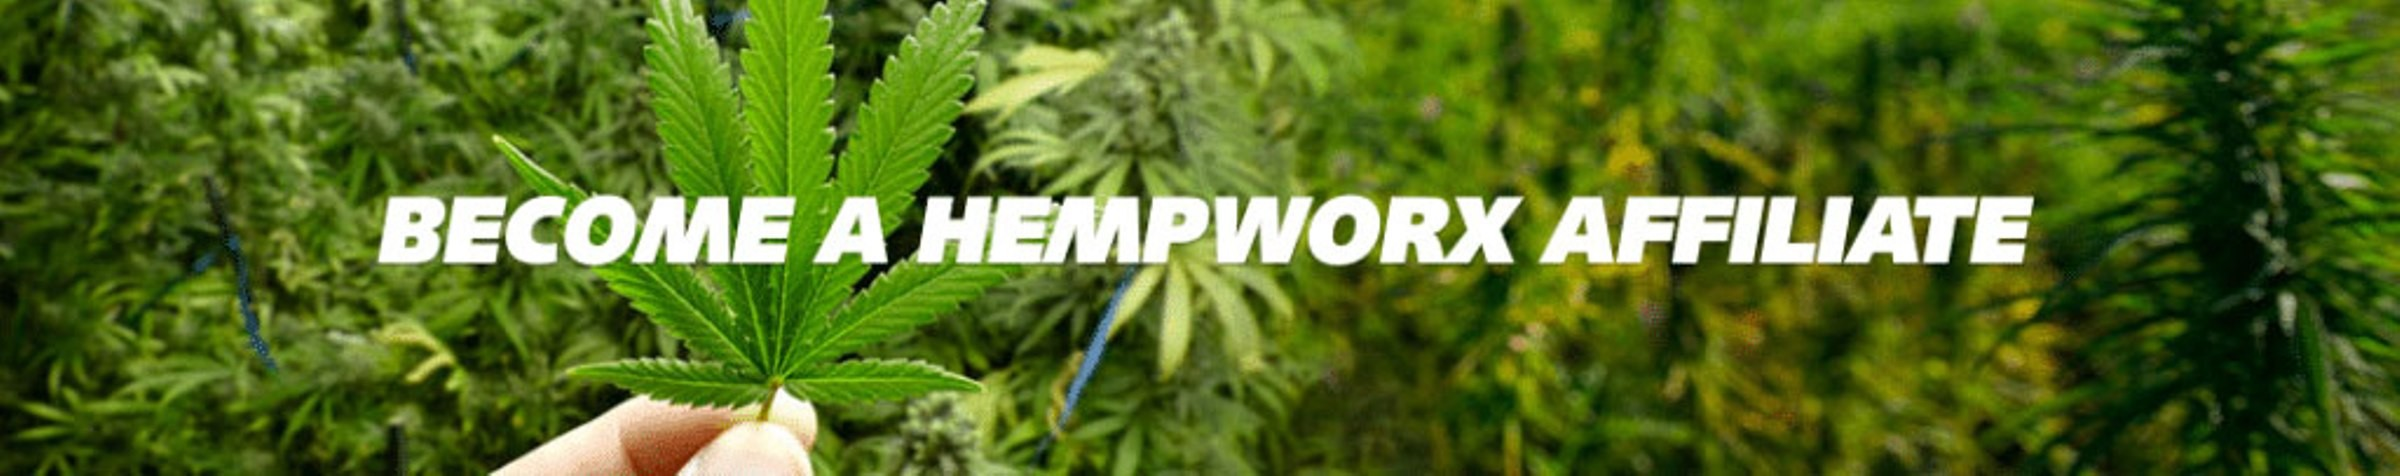 Become a hempworx affiliate